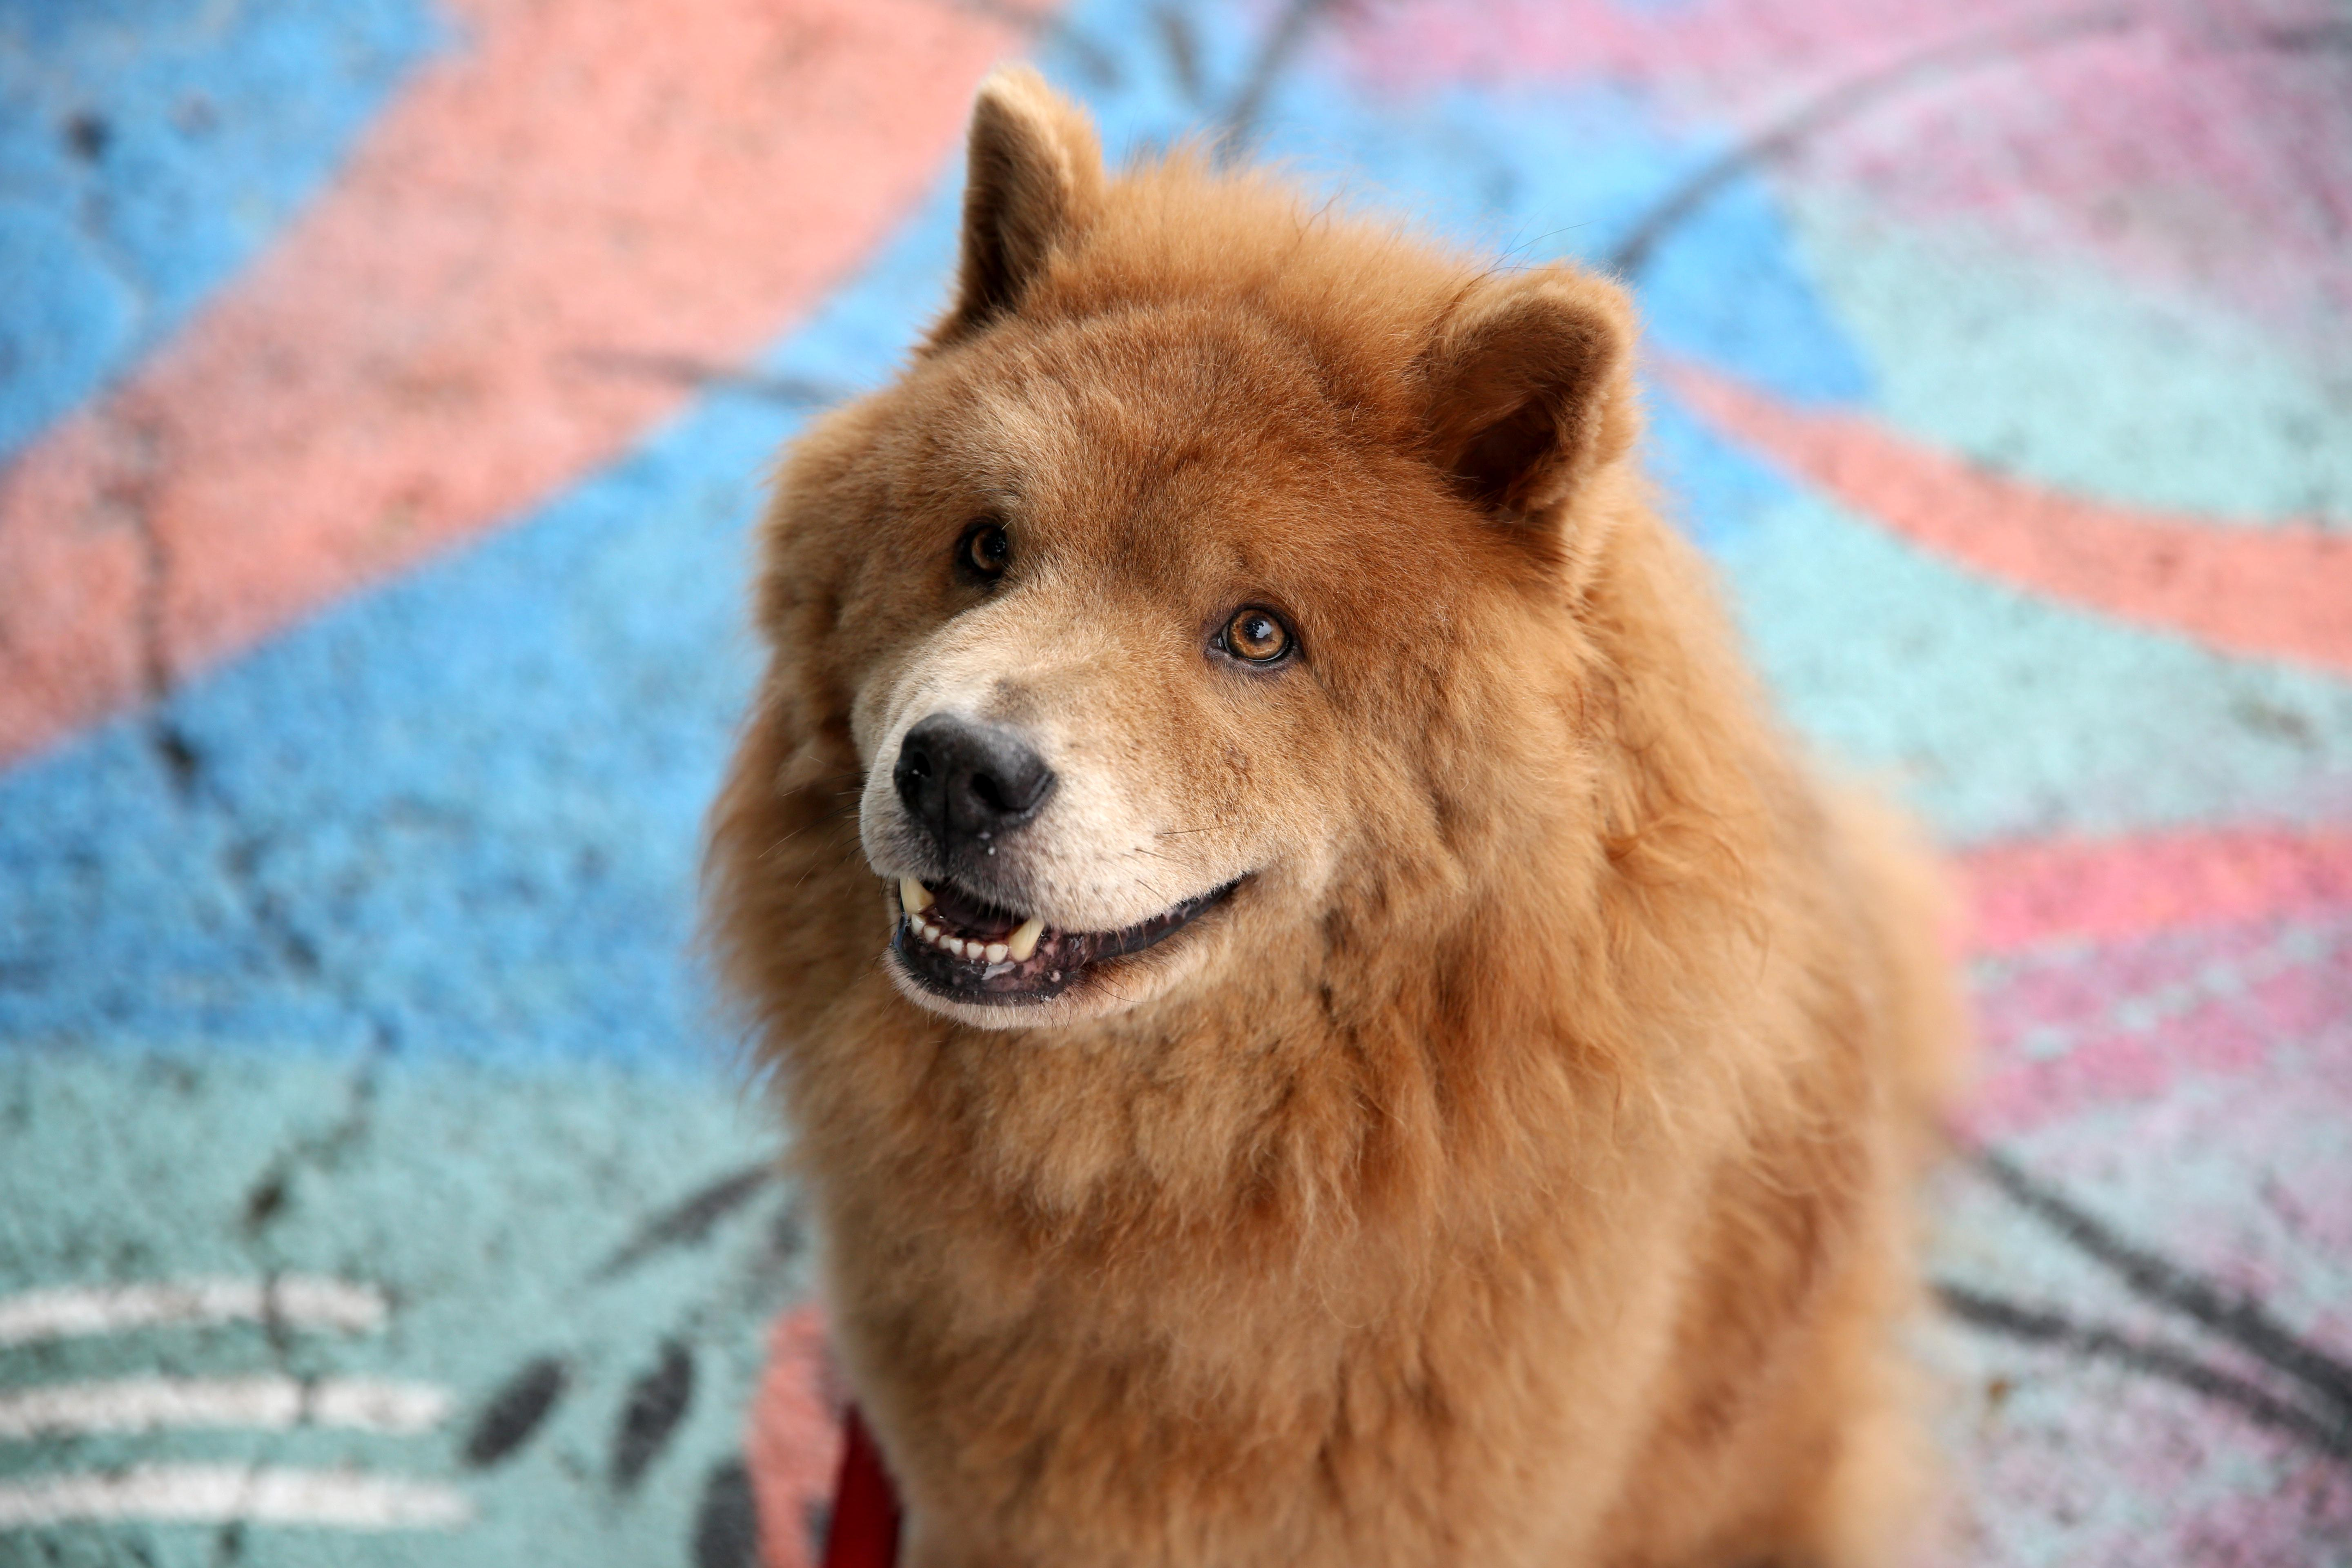 "Meet Kingston, a Chow Chow who is celebrating his ninth birthday TODAY! Happy birthday, Kingston! His mom had been obsessed with Chow Chows forever, thanks to Martha Stewart's dog Paw Paw, and in August 2008, she finally found her perfect pup. Kingston loves belly scratches, treats, the dog park and standing guard against squirrels and bunnies. He can most often be found in his custom dog elevated dog bed resting his chin on the window sill and bird/squirrel/bunny-watching all day long.  While he knows all the basic commands -- sit, down, shake, high-five, speak and stand -- he never quite mastered stay, as he prefers to be on the go! Kingston is also one of the four-legged founders of the ""Bipawtisan March"" coming to D.C. on June 4. The march is being organized by a group of local dog owners who ""wanted to find a way that a group of individuals from different political and ideological backgrounds could come together and find common ground on a position that we all support: our pets. "" All proceeds from the march go directly to the Humane Rescue Alliance. If you or someone you know has a pet you'd like featured, email us at dcrefined@gmail.com or tag #DCRUFFined and your furbaby could be the next spotlighted! (Image: Amanda Andrade-Rhoades/ DC Refined)"